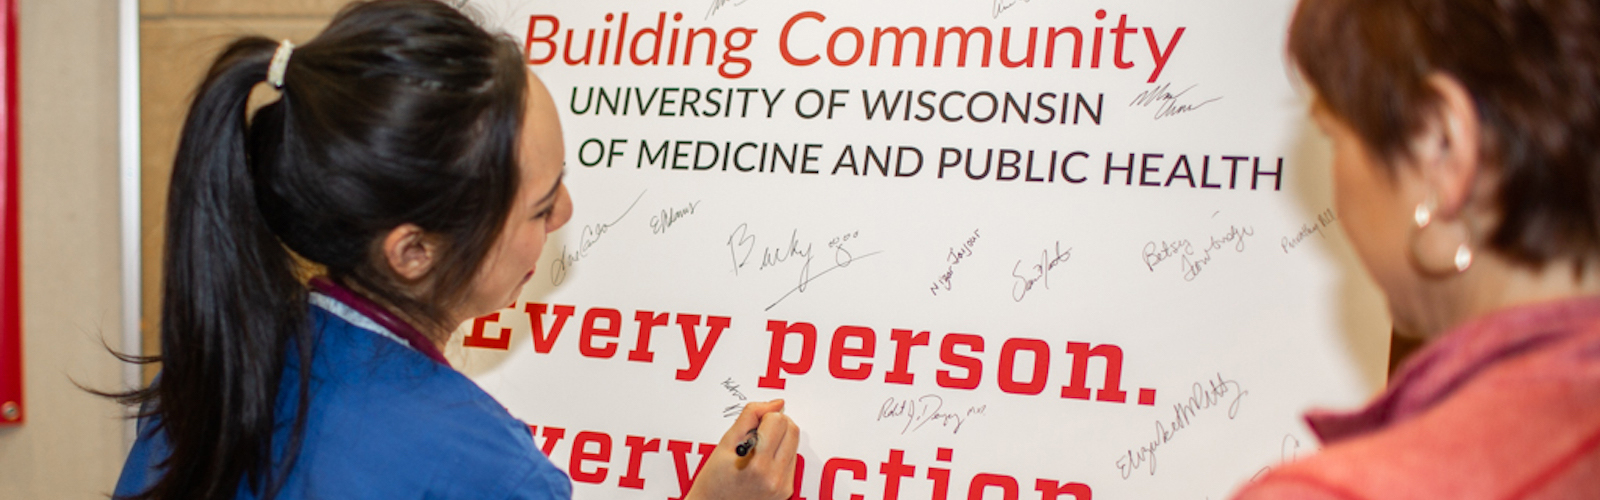 signing Building Community poster